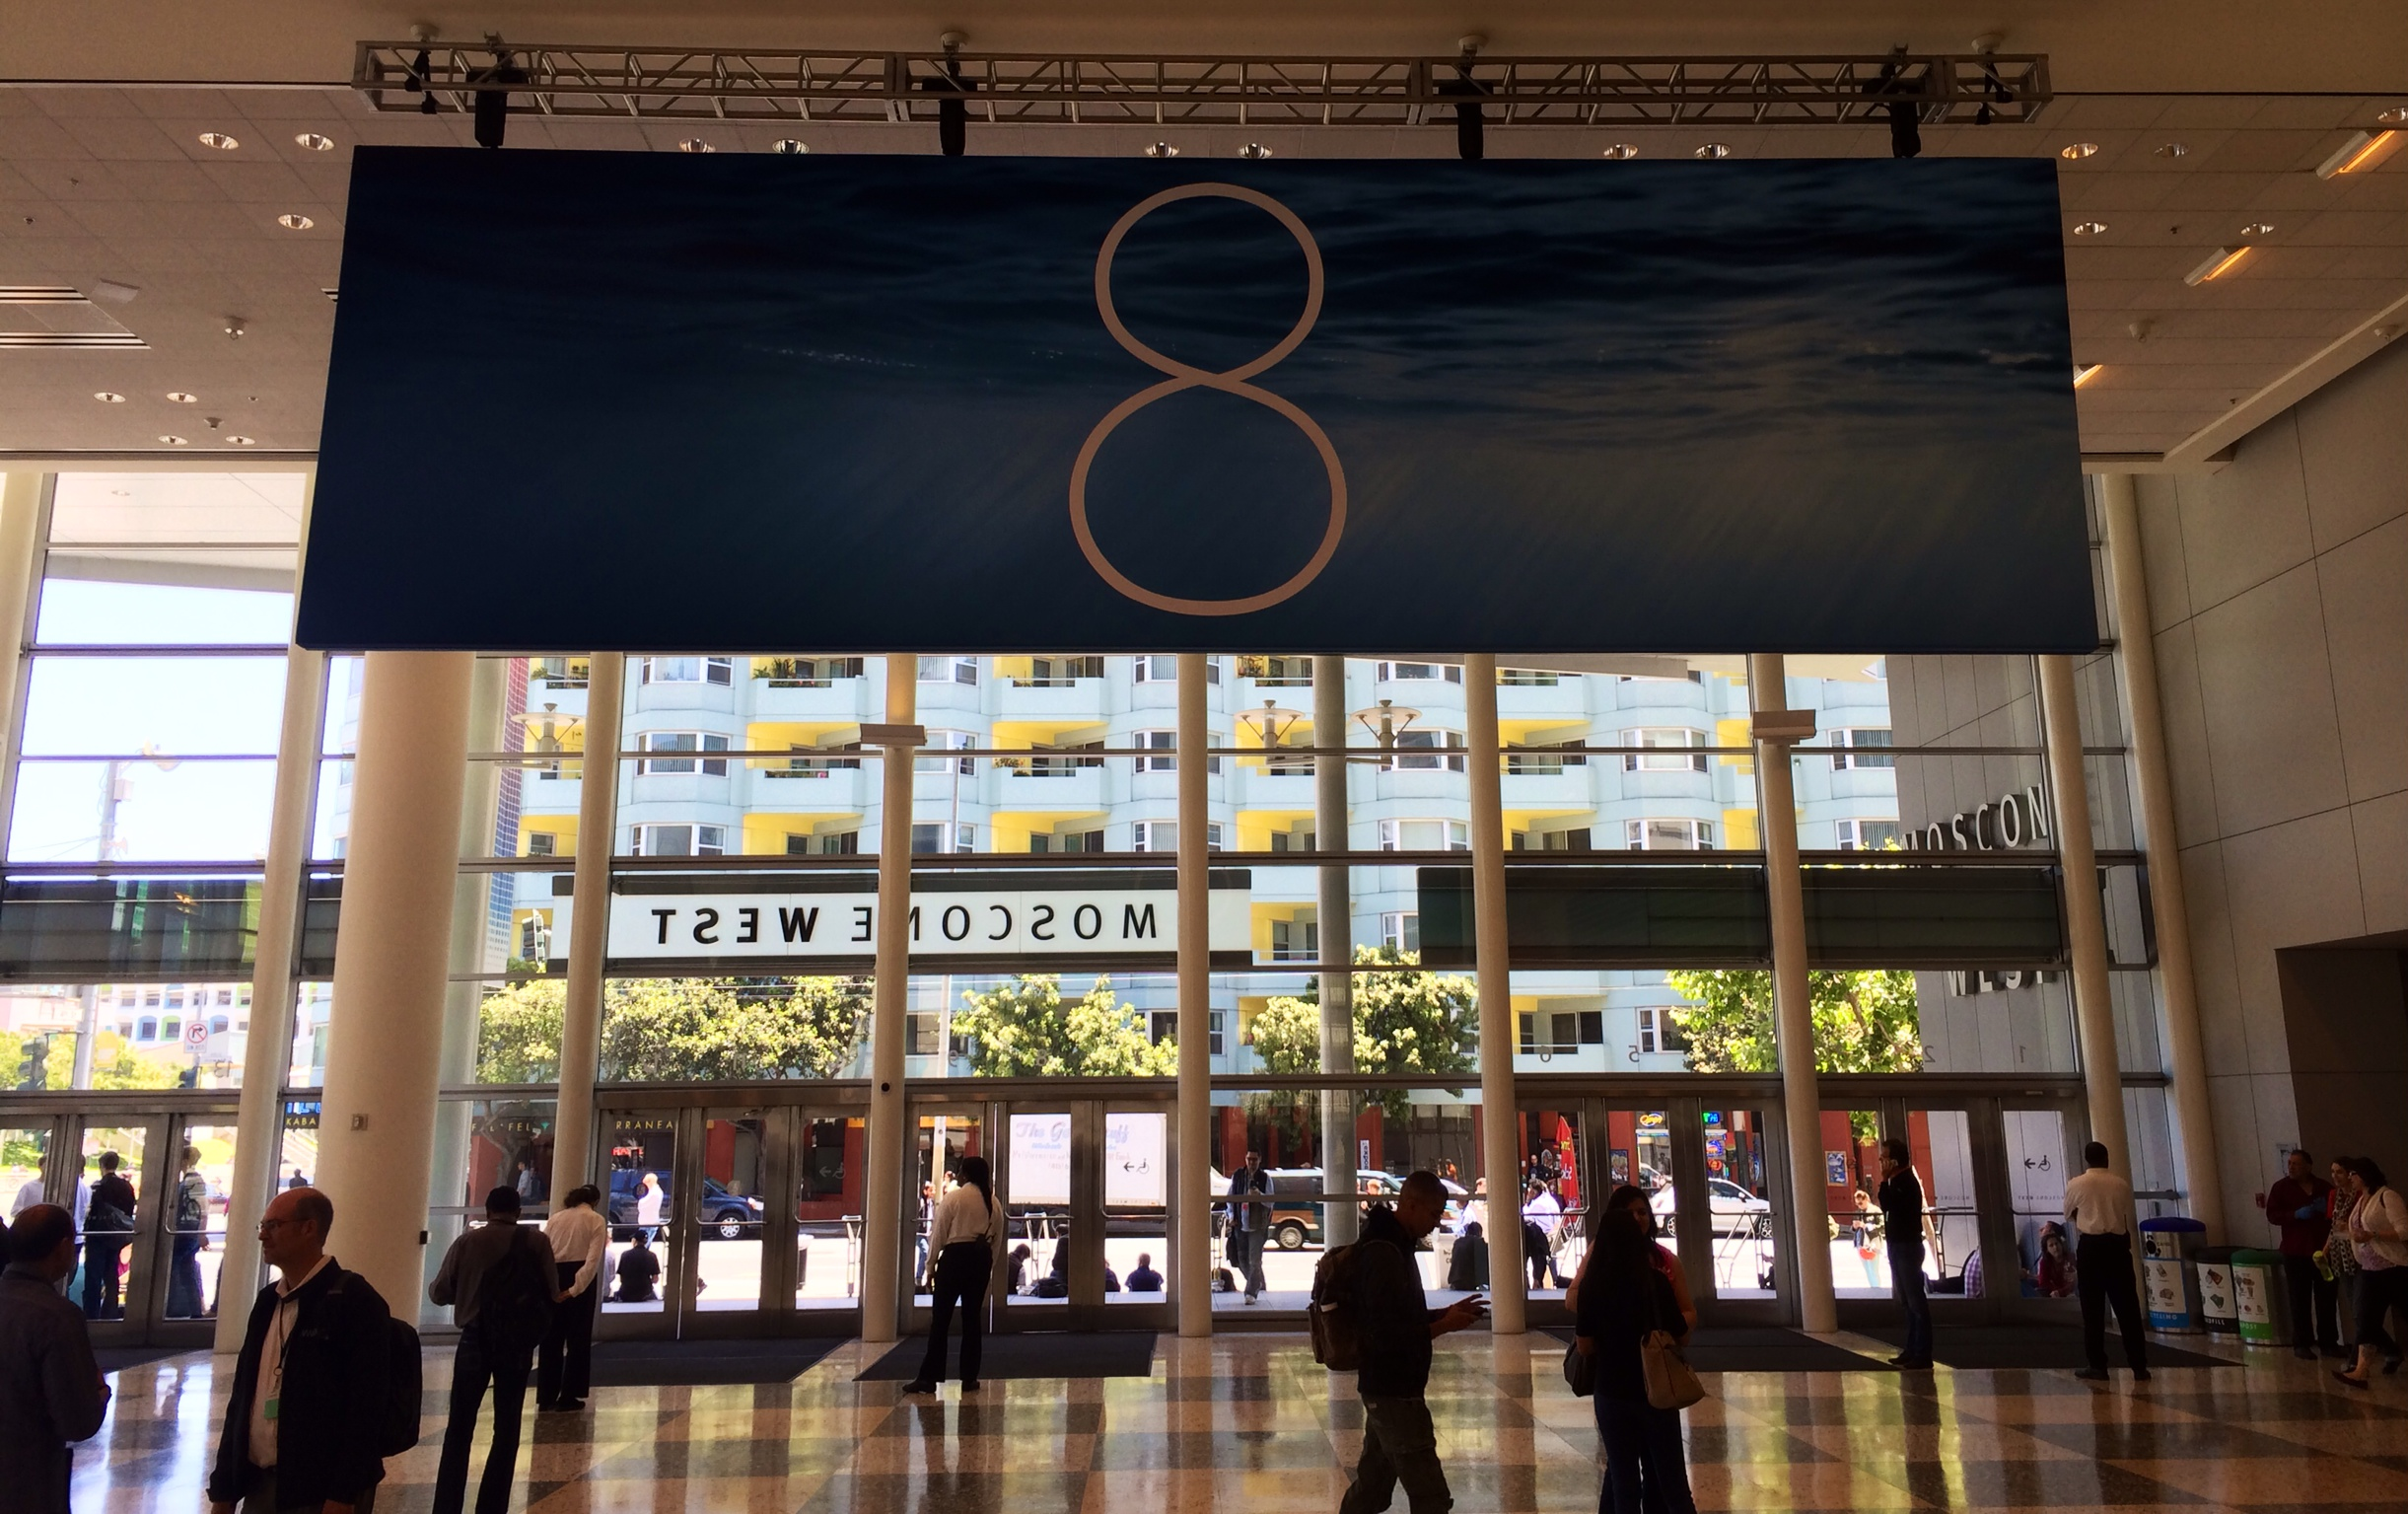 iOS 8 banner in Moscone West (K. Sliech, iPhone 5S)